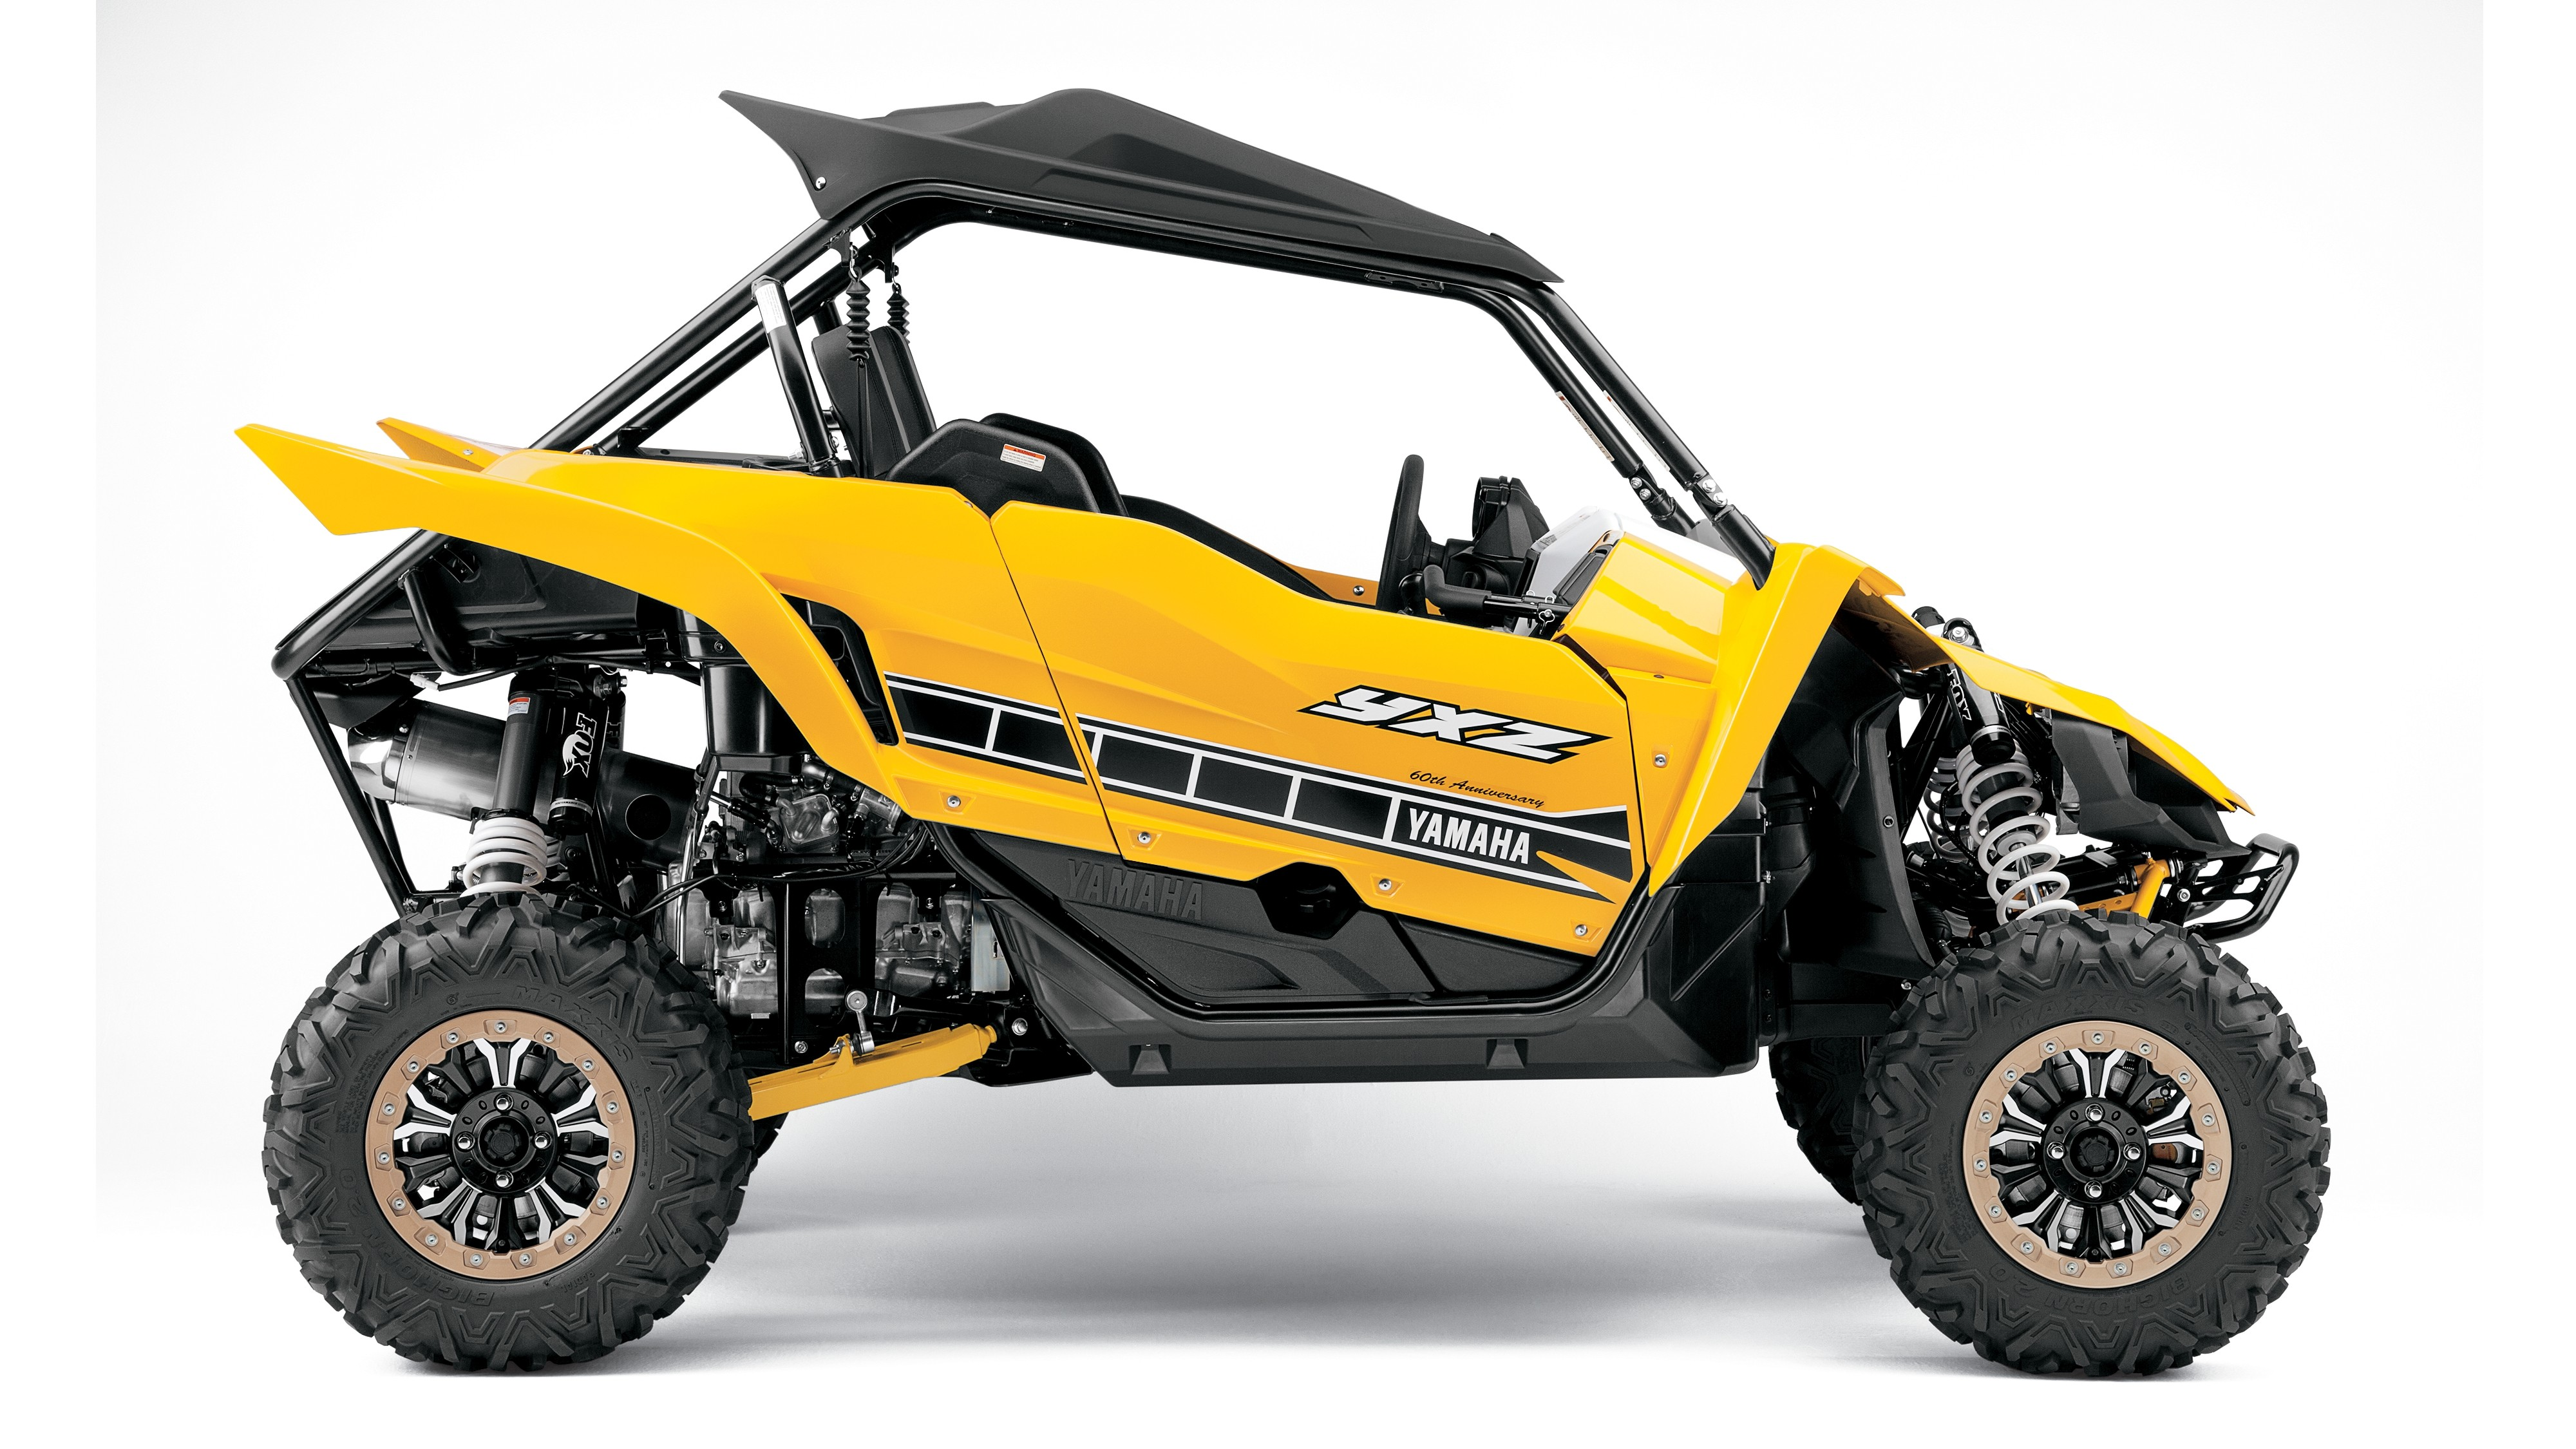 2016 Yamaha YXZ1000R Is A Three Cylinder Supersport SxS